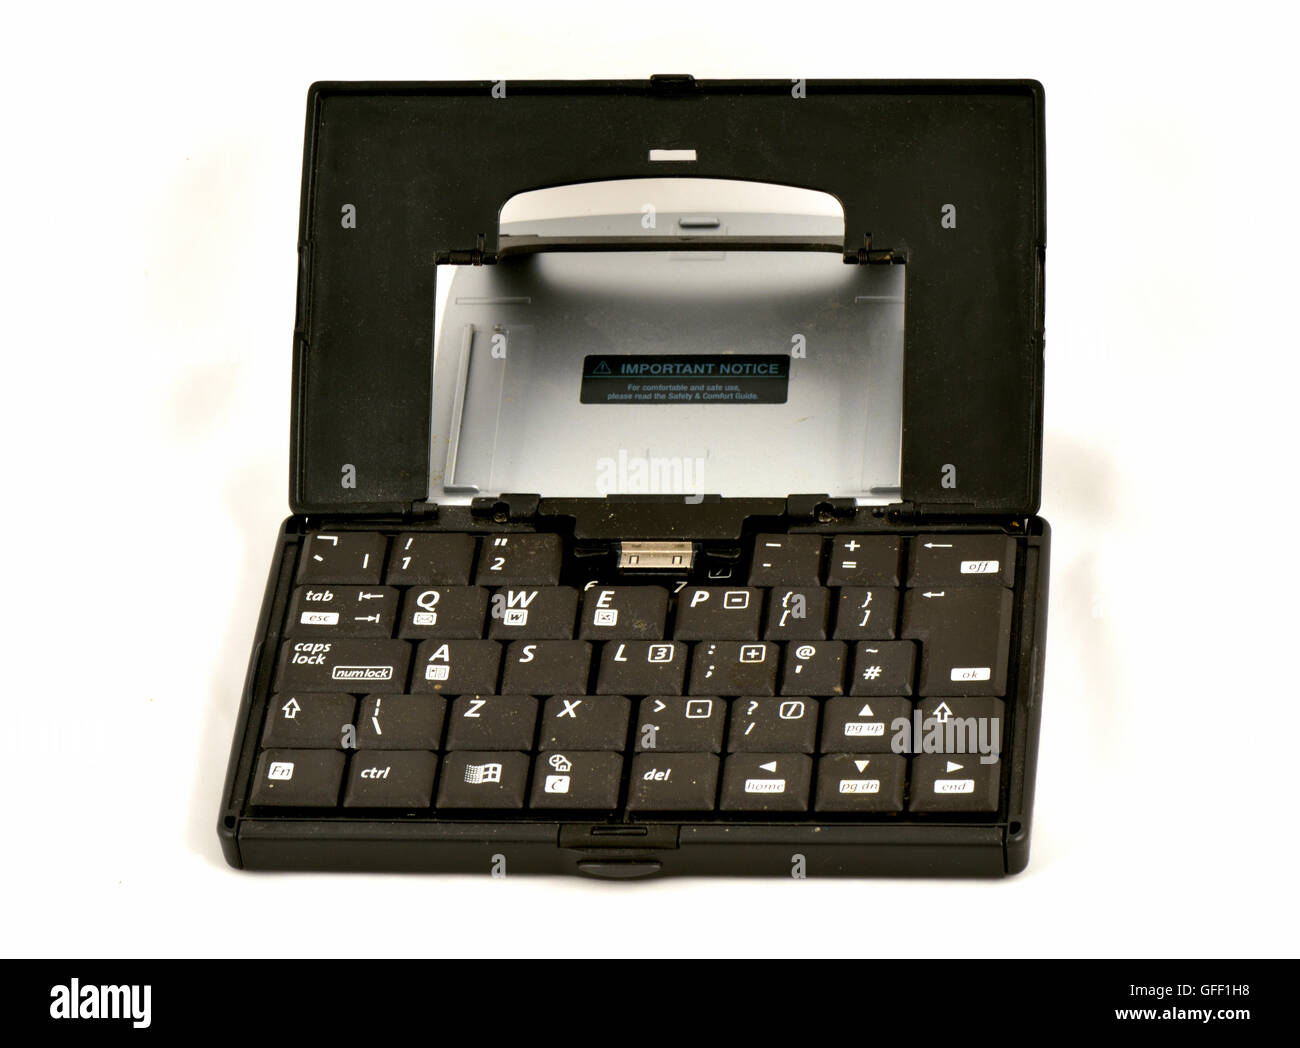 Portable keyboard for the old HP Compaq IPAQ personal organizer PDA smart device - Stock Image